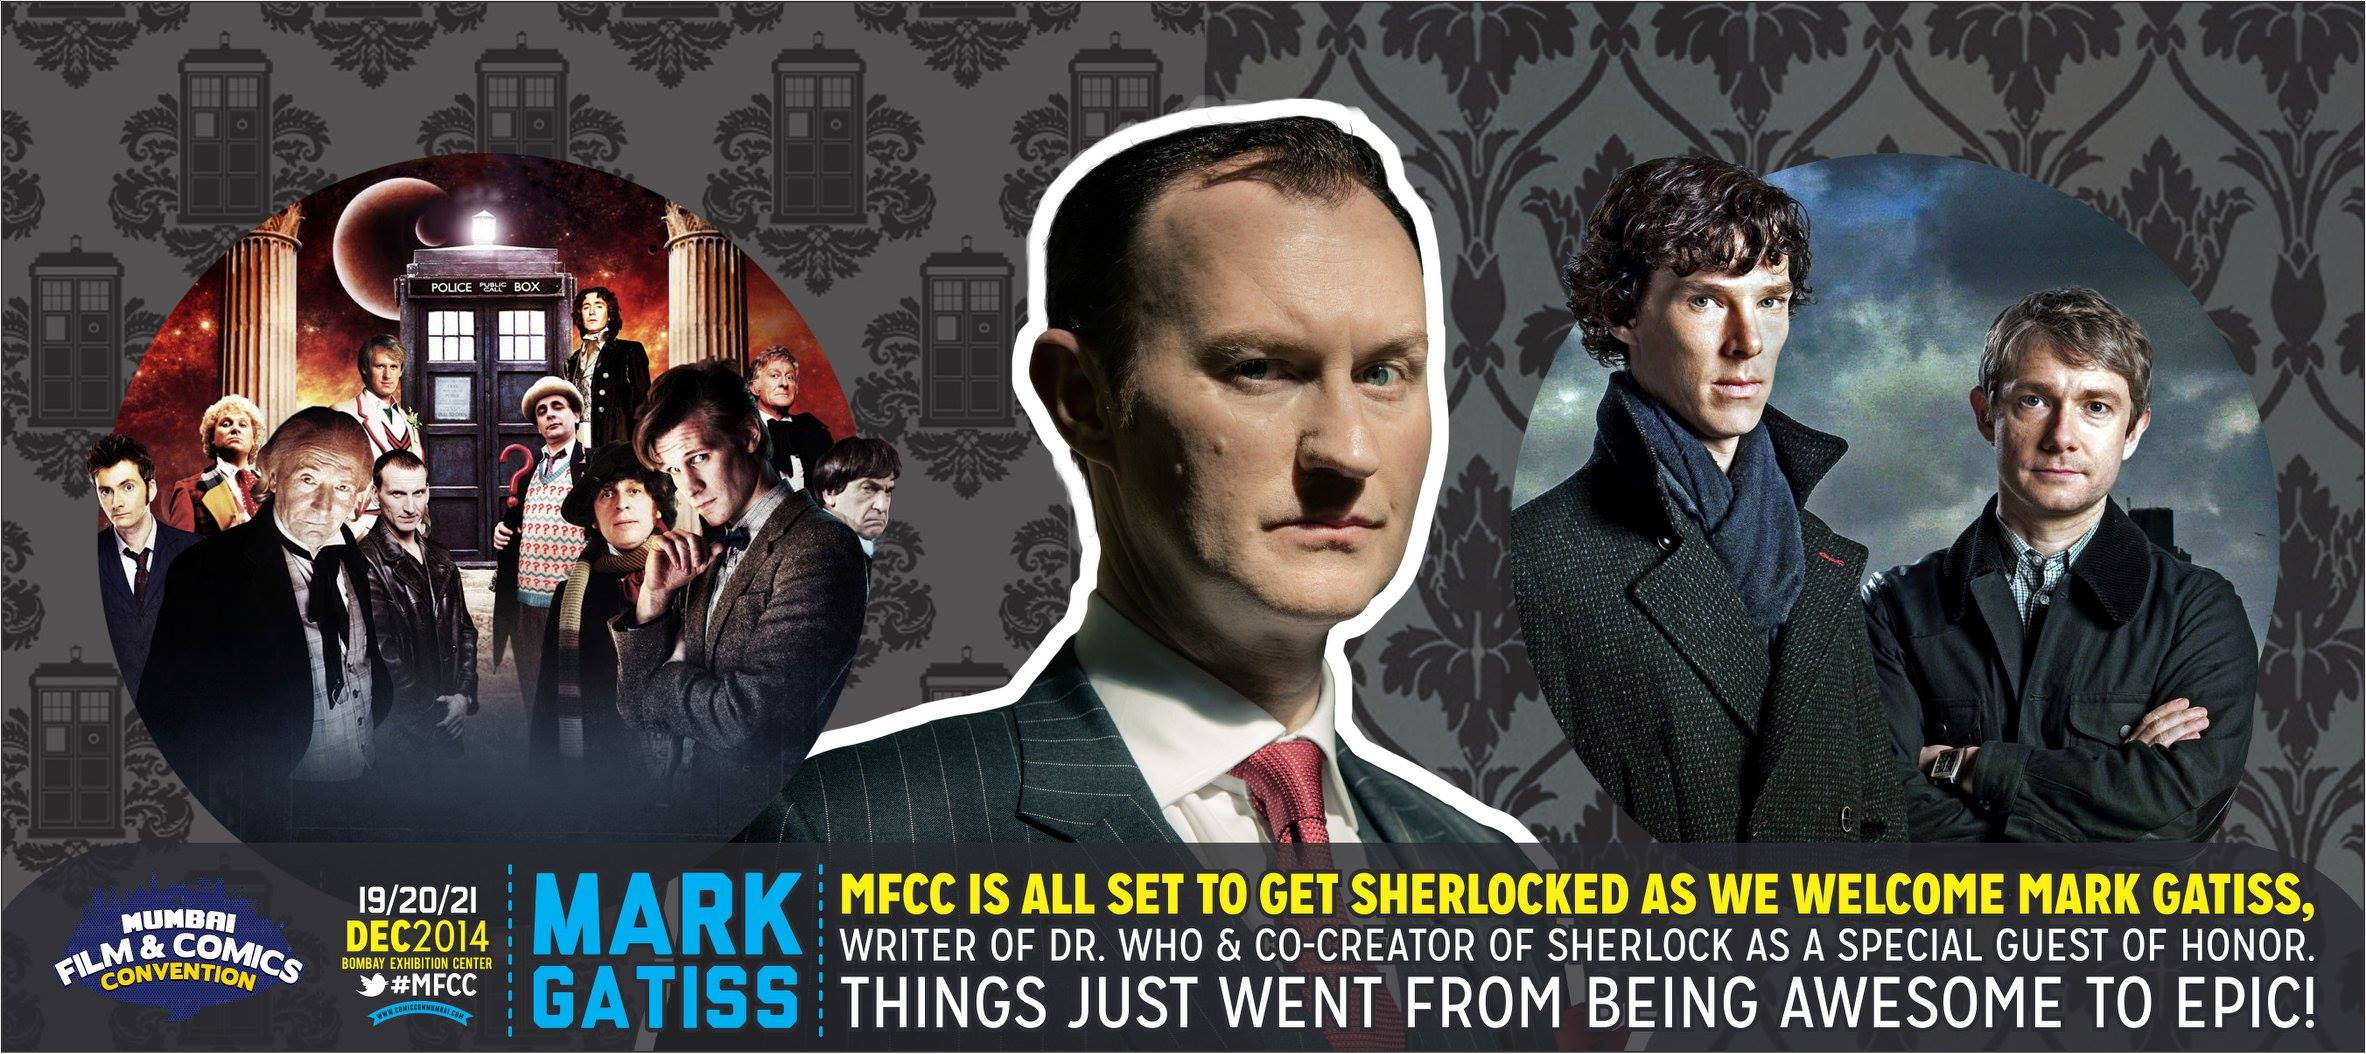 Mark Gatiss Will Attend Mumbai Comic Con 2014 (19 Dec – 21 Dec) As Special Guest